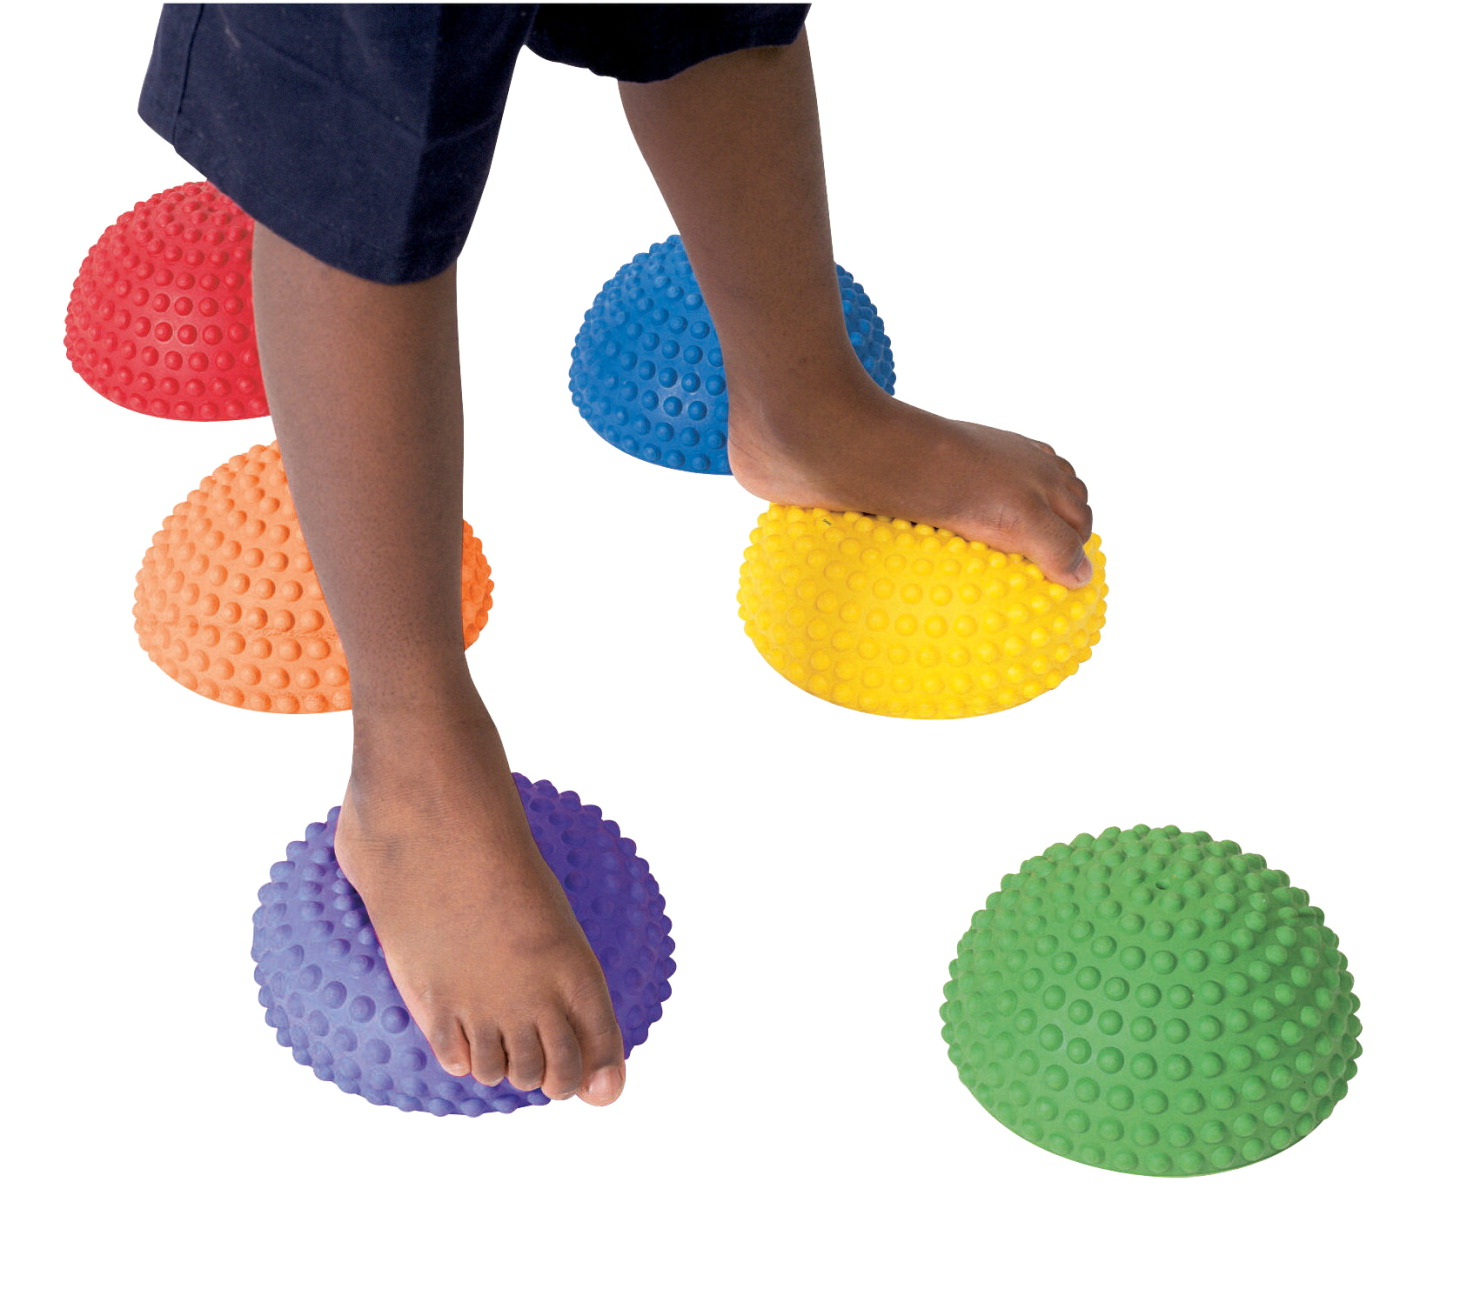 Abilitations Tactile Step-N-Stones, Set of 6